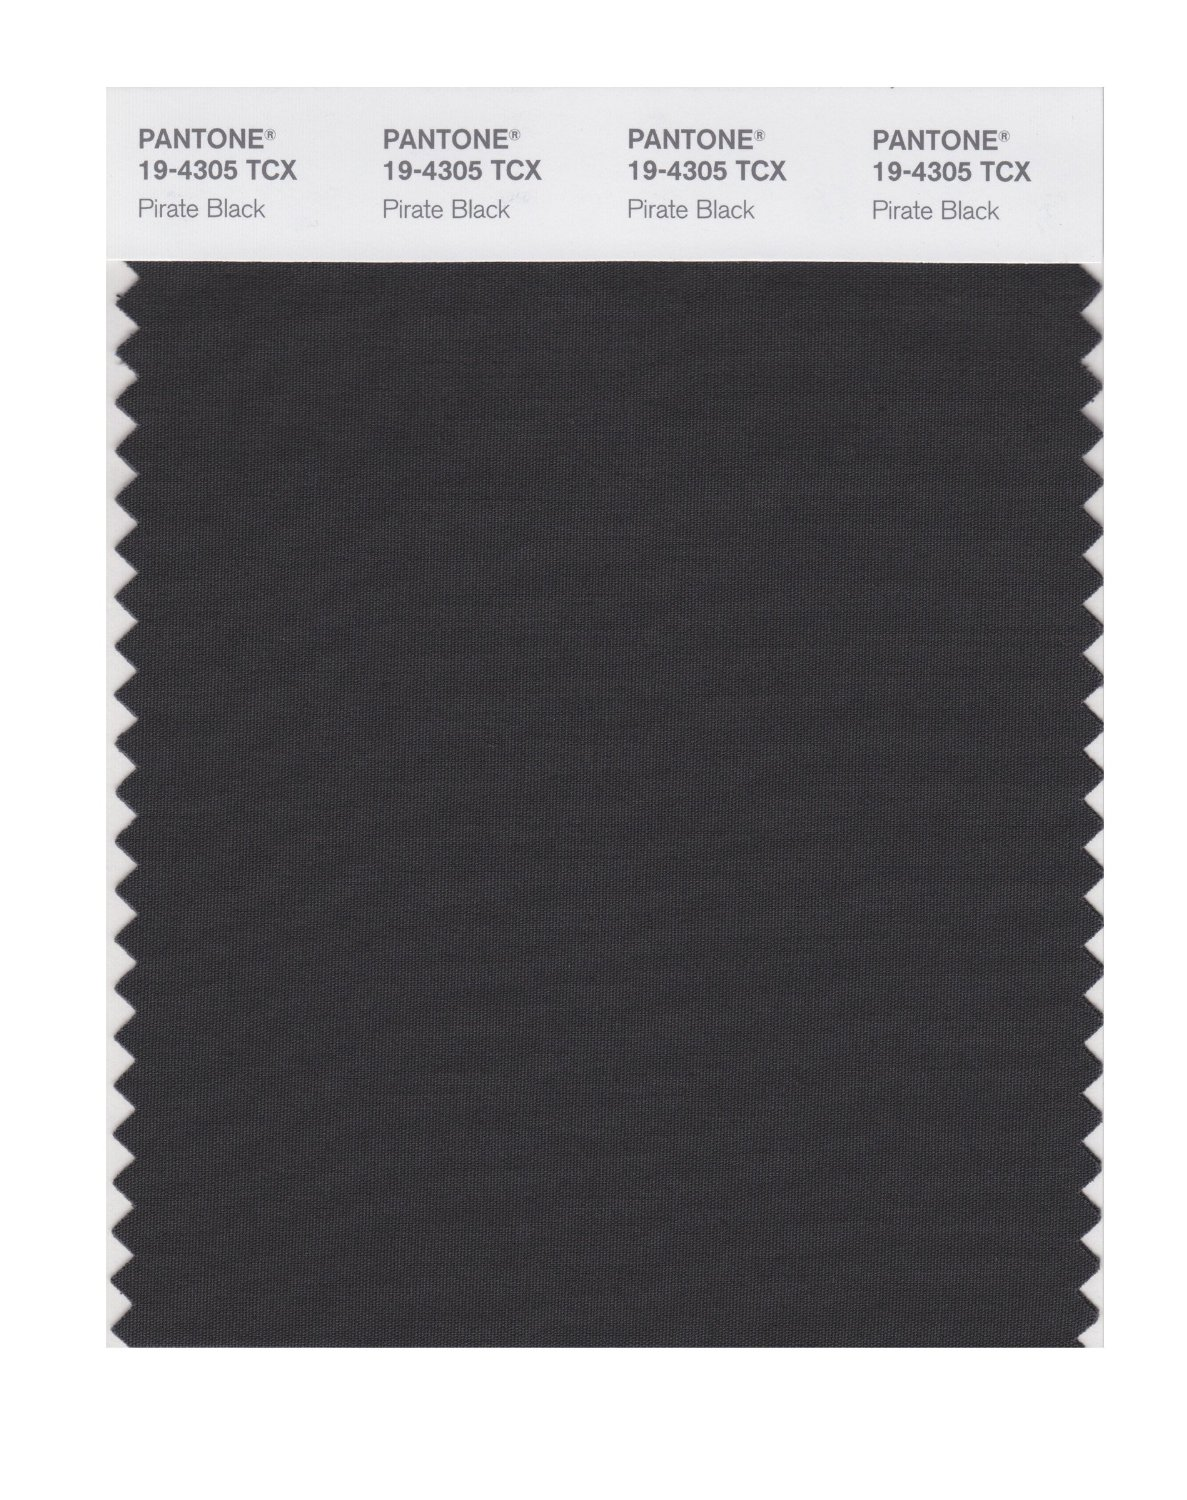 Pantone Smart Swatch 19-4305 Pirate Black